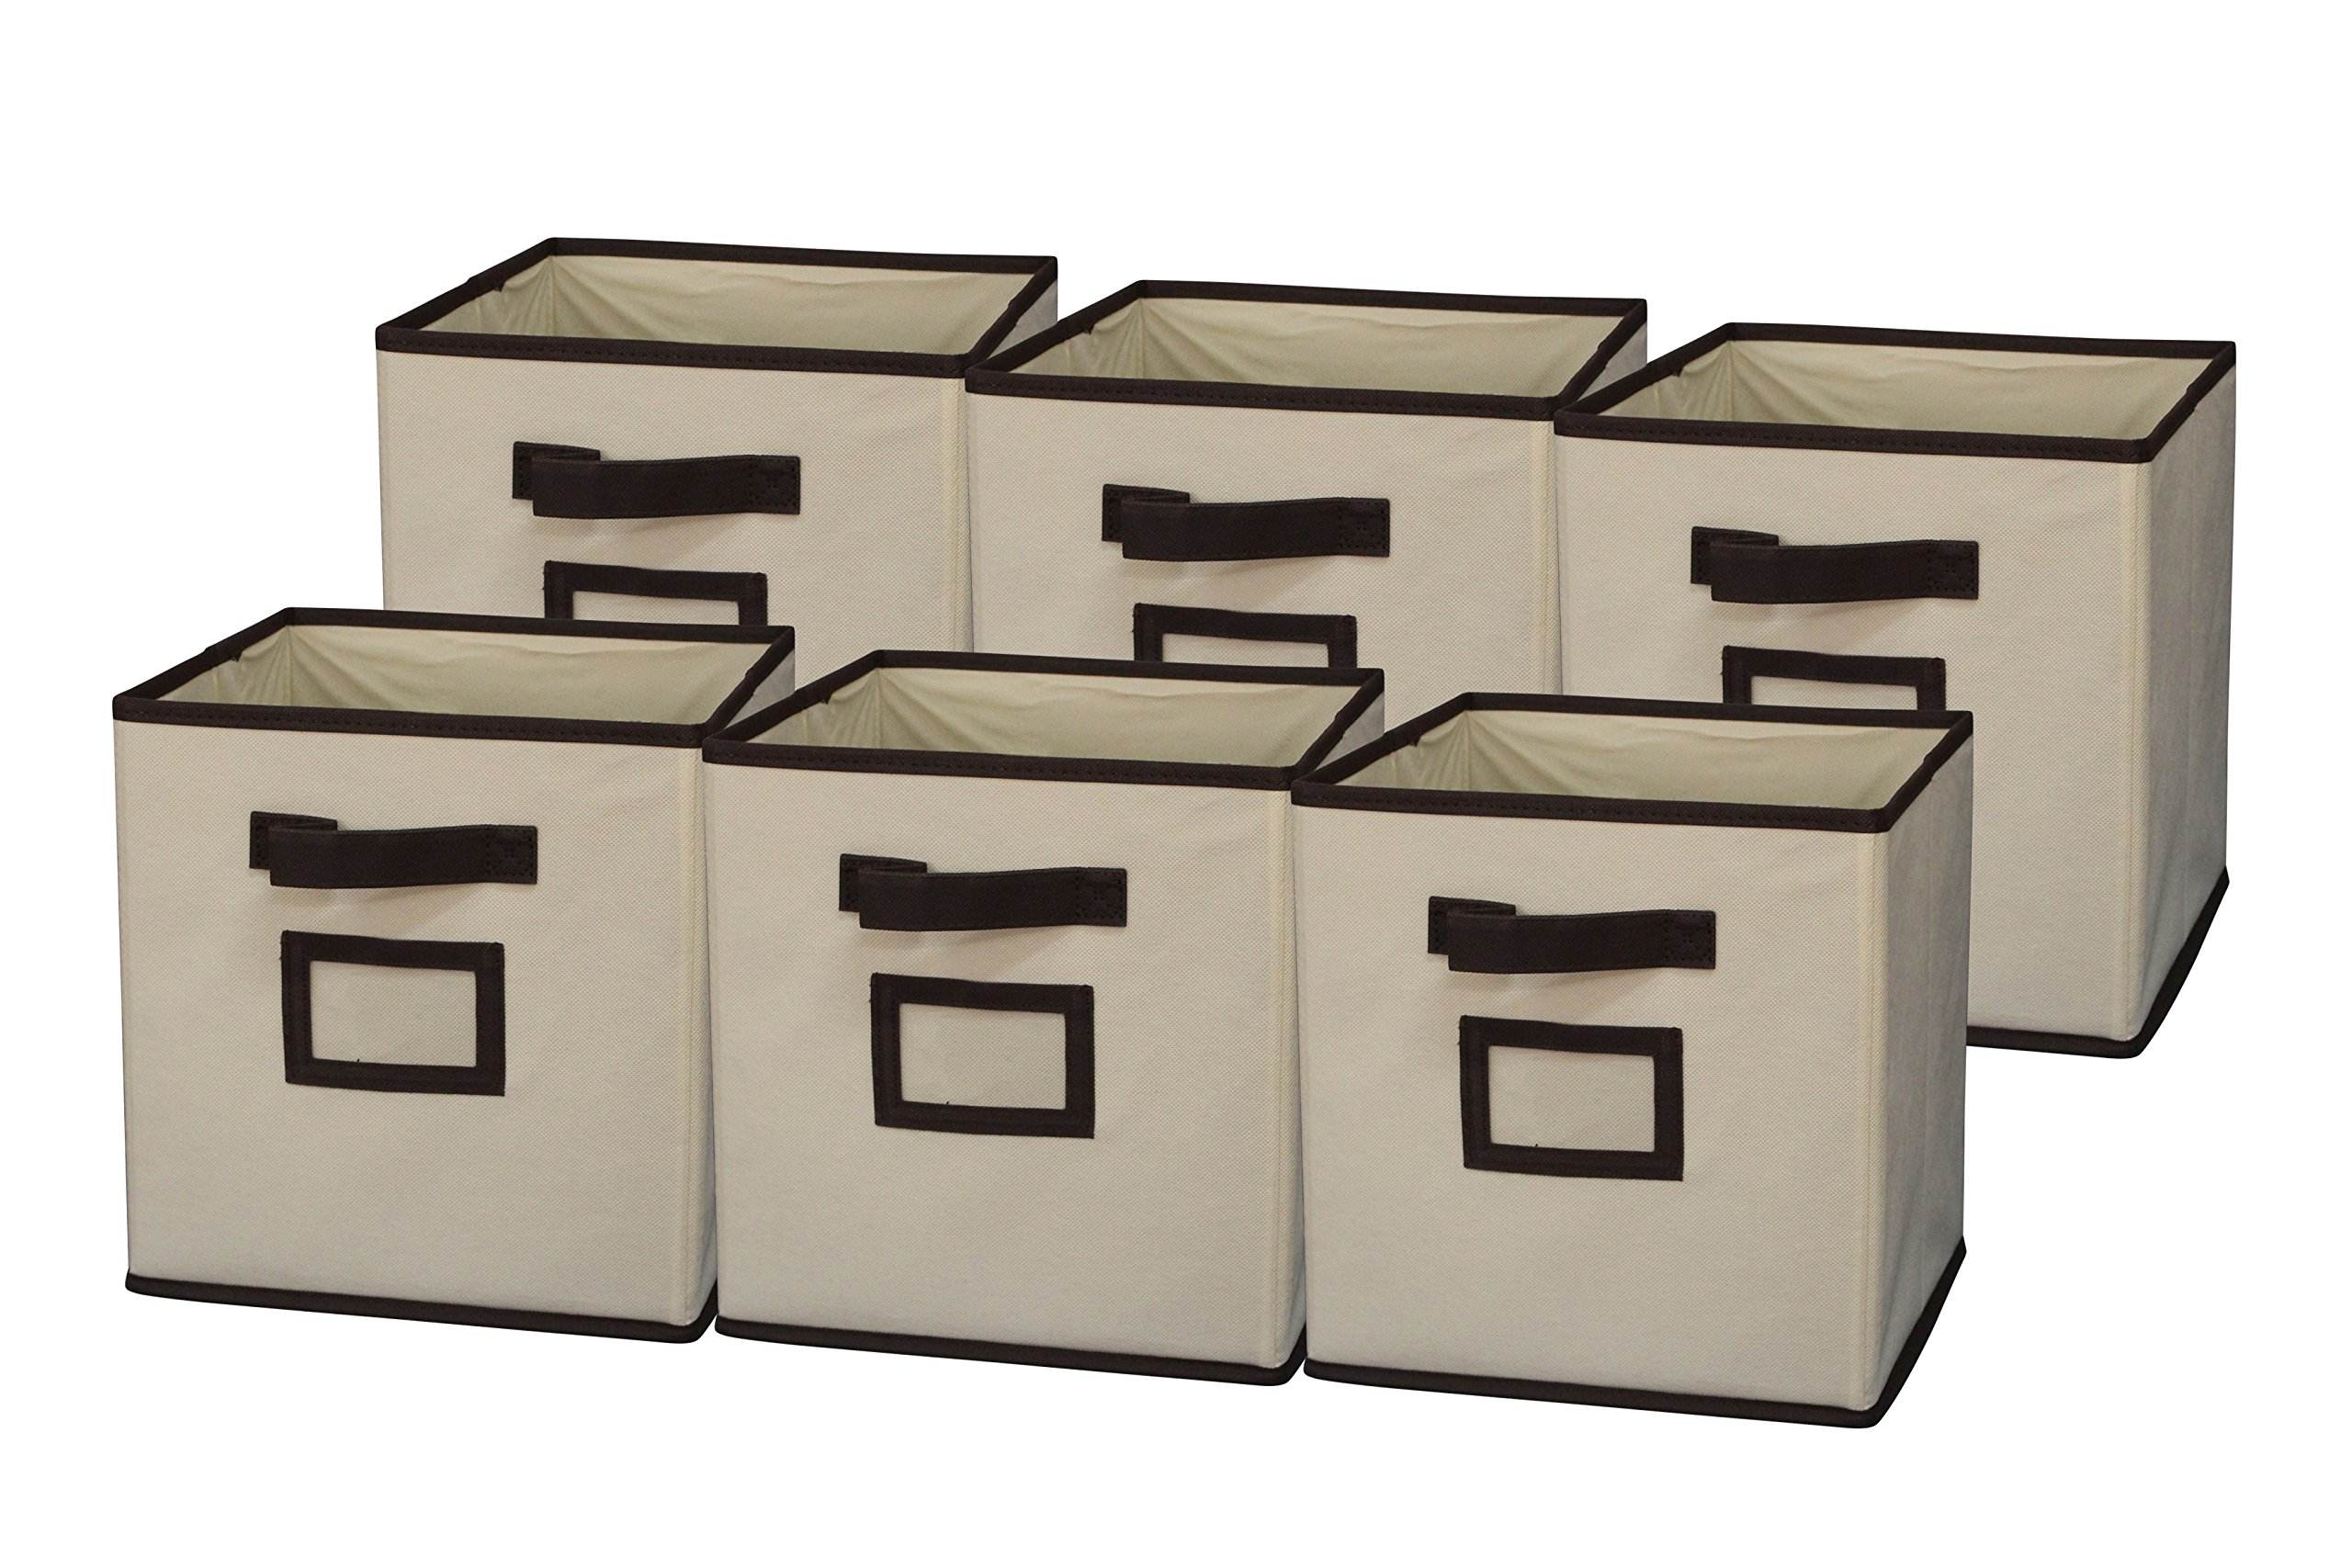 Sodynee Foldable Cloth Storage Cube Basket Bins Organizer Containers Drawers, 6 Pack, Coffee/Beige